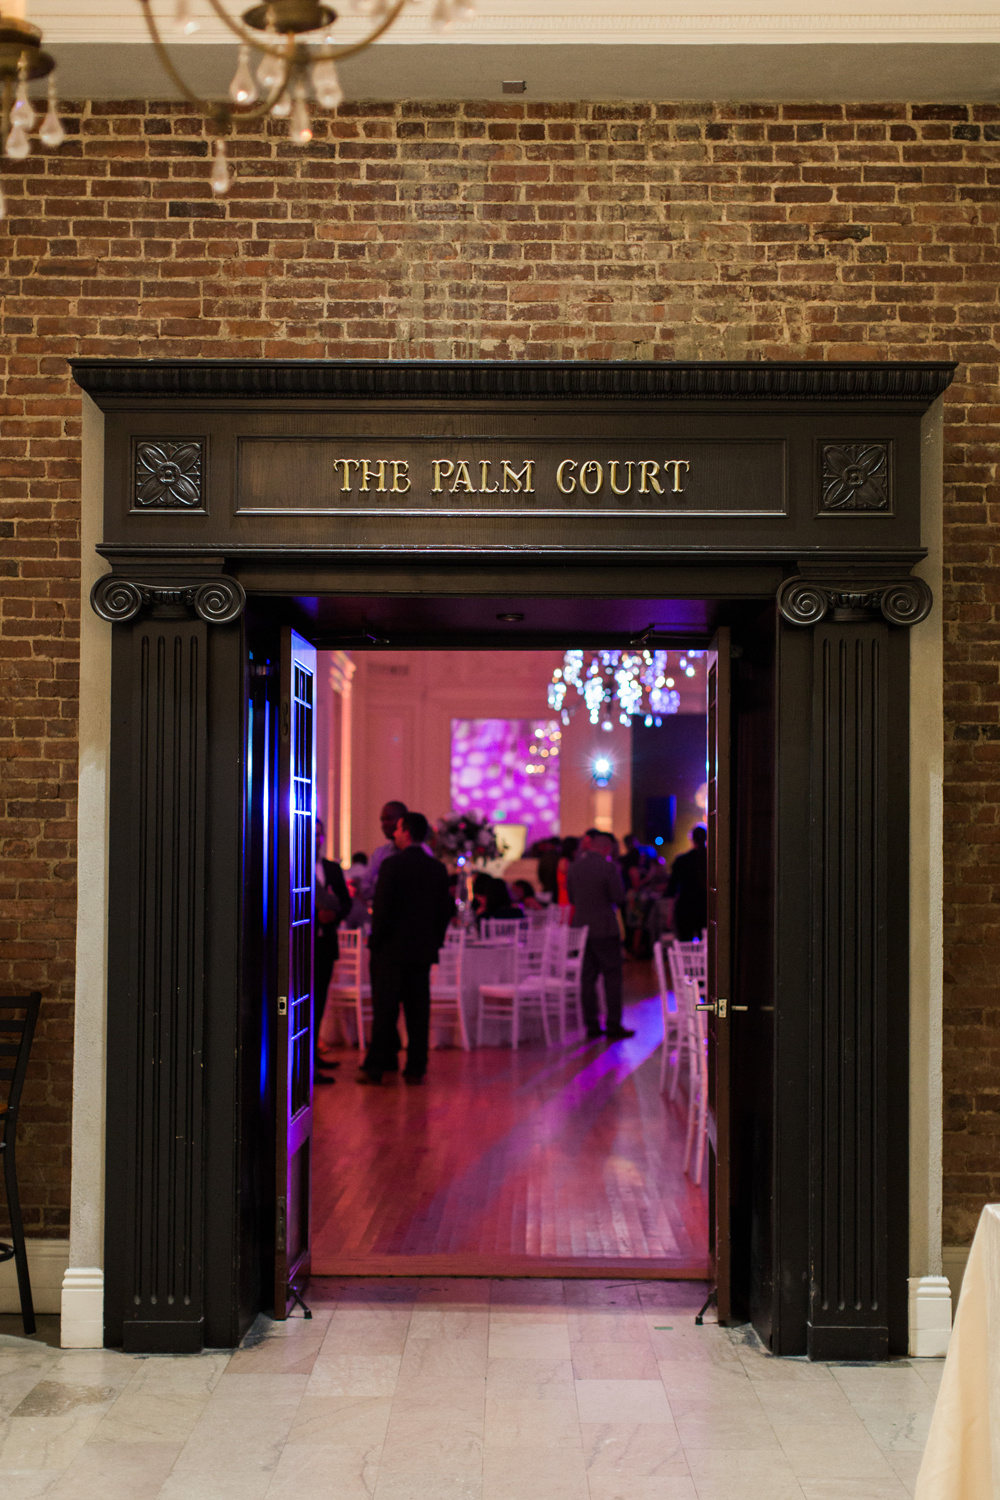 88cee-pretty-in-pink-vintage-hollywood-fiesta-wedding-alexandria-ballroom-palm-court-ballroom.jpg